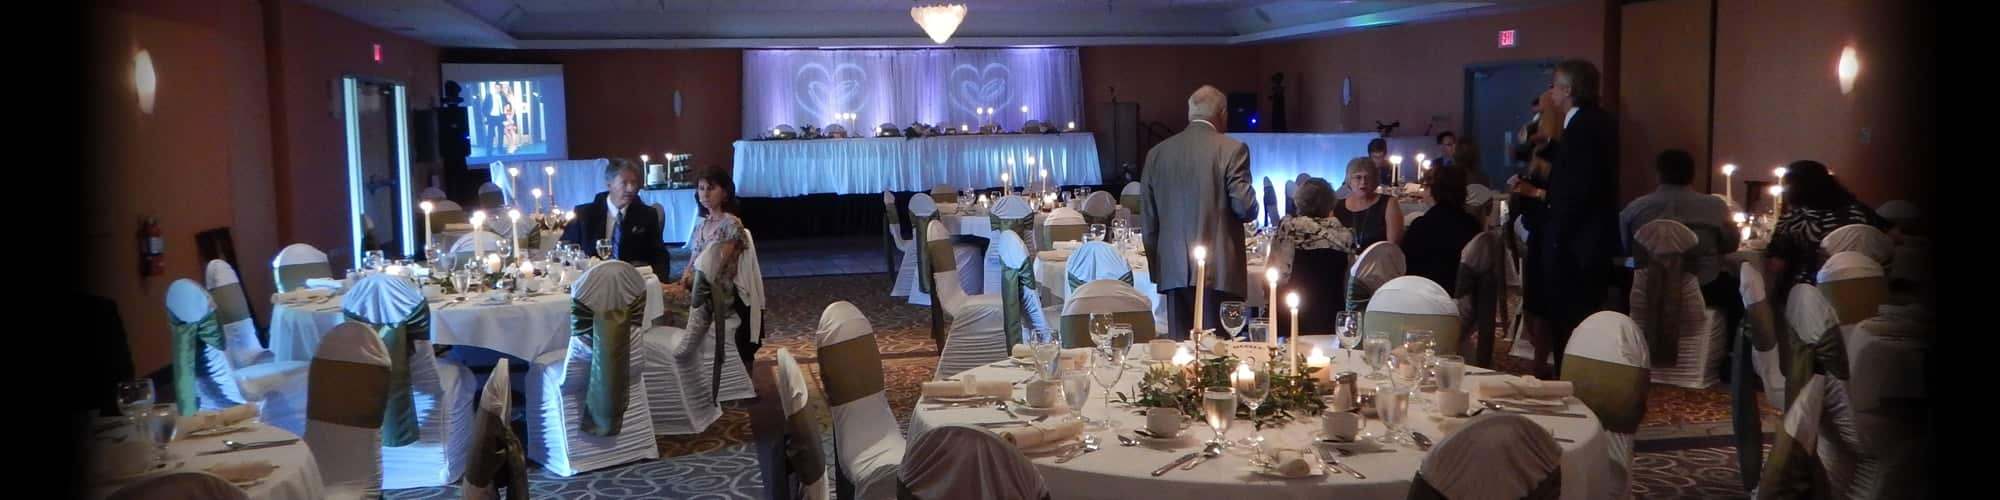 Lighting Can Add Class To Your Reception : Gudlite Entertainment